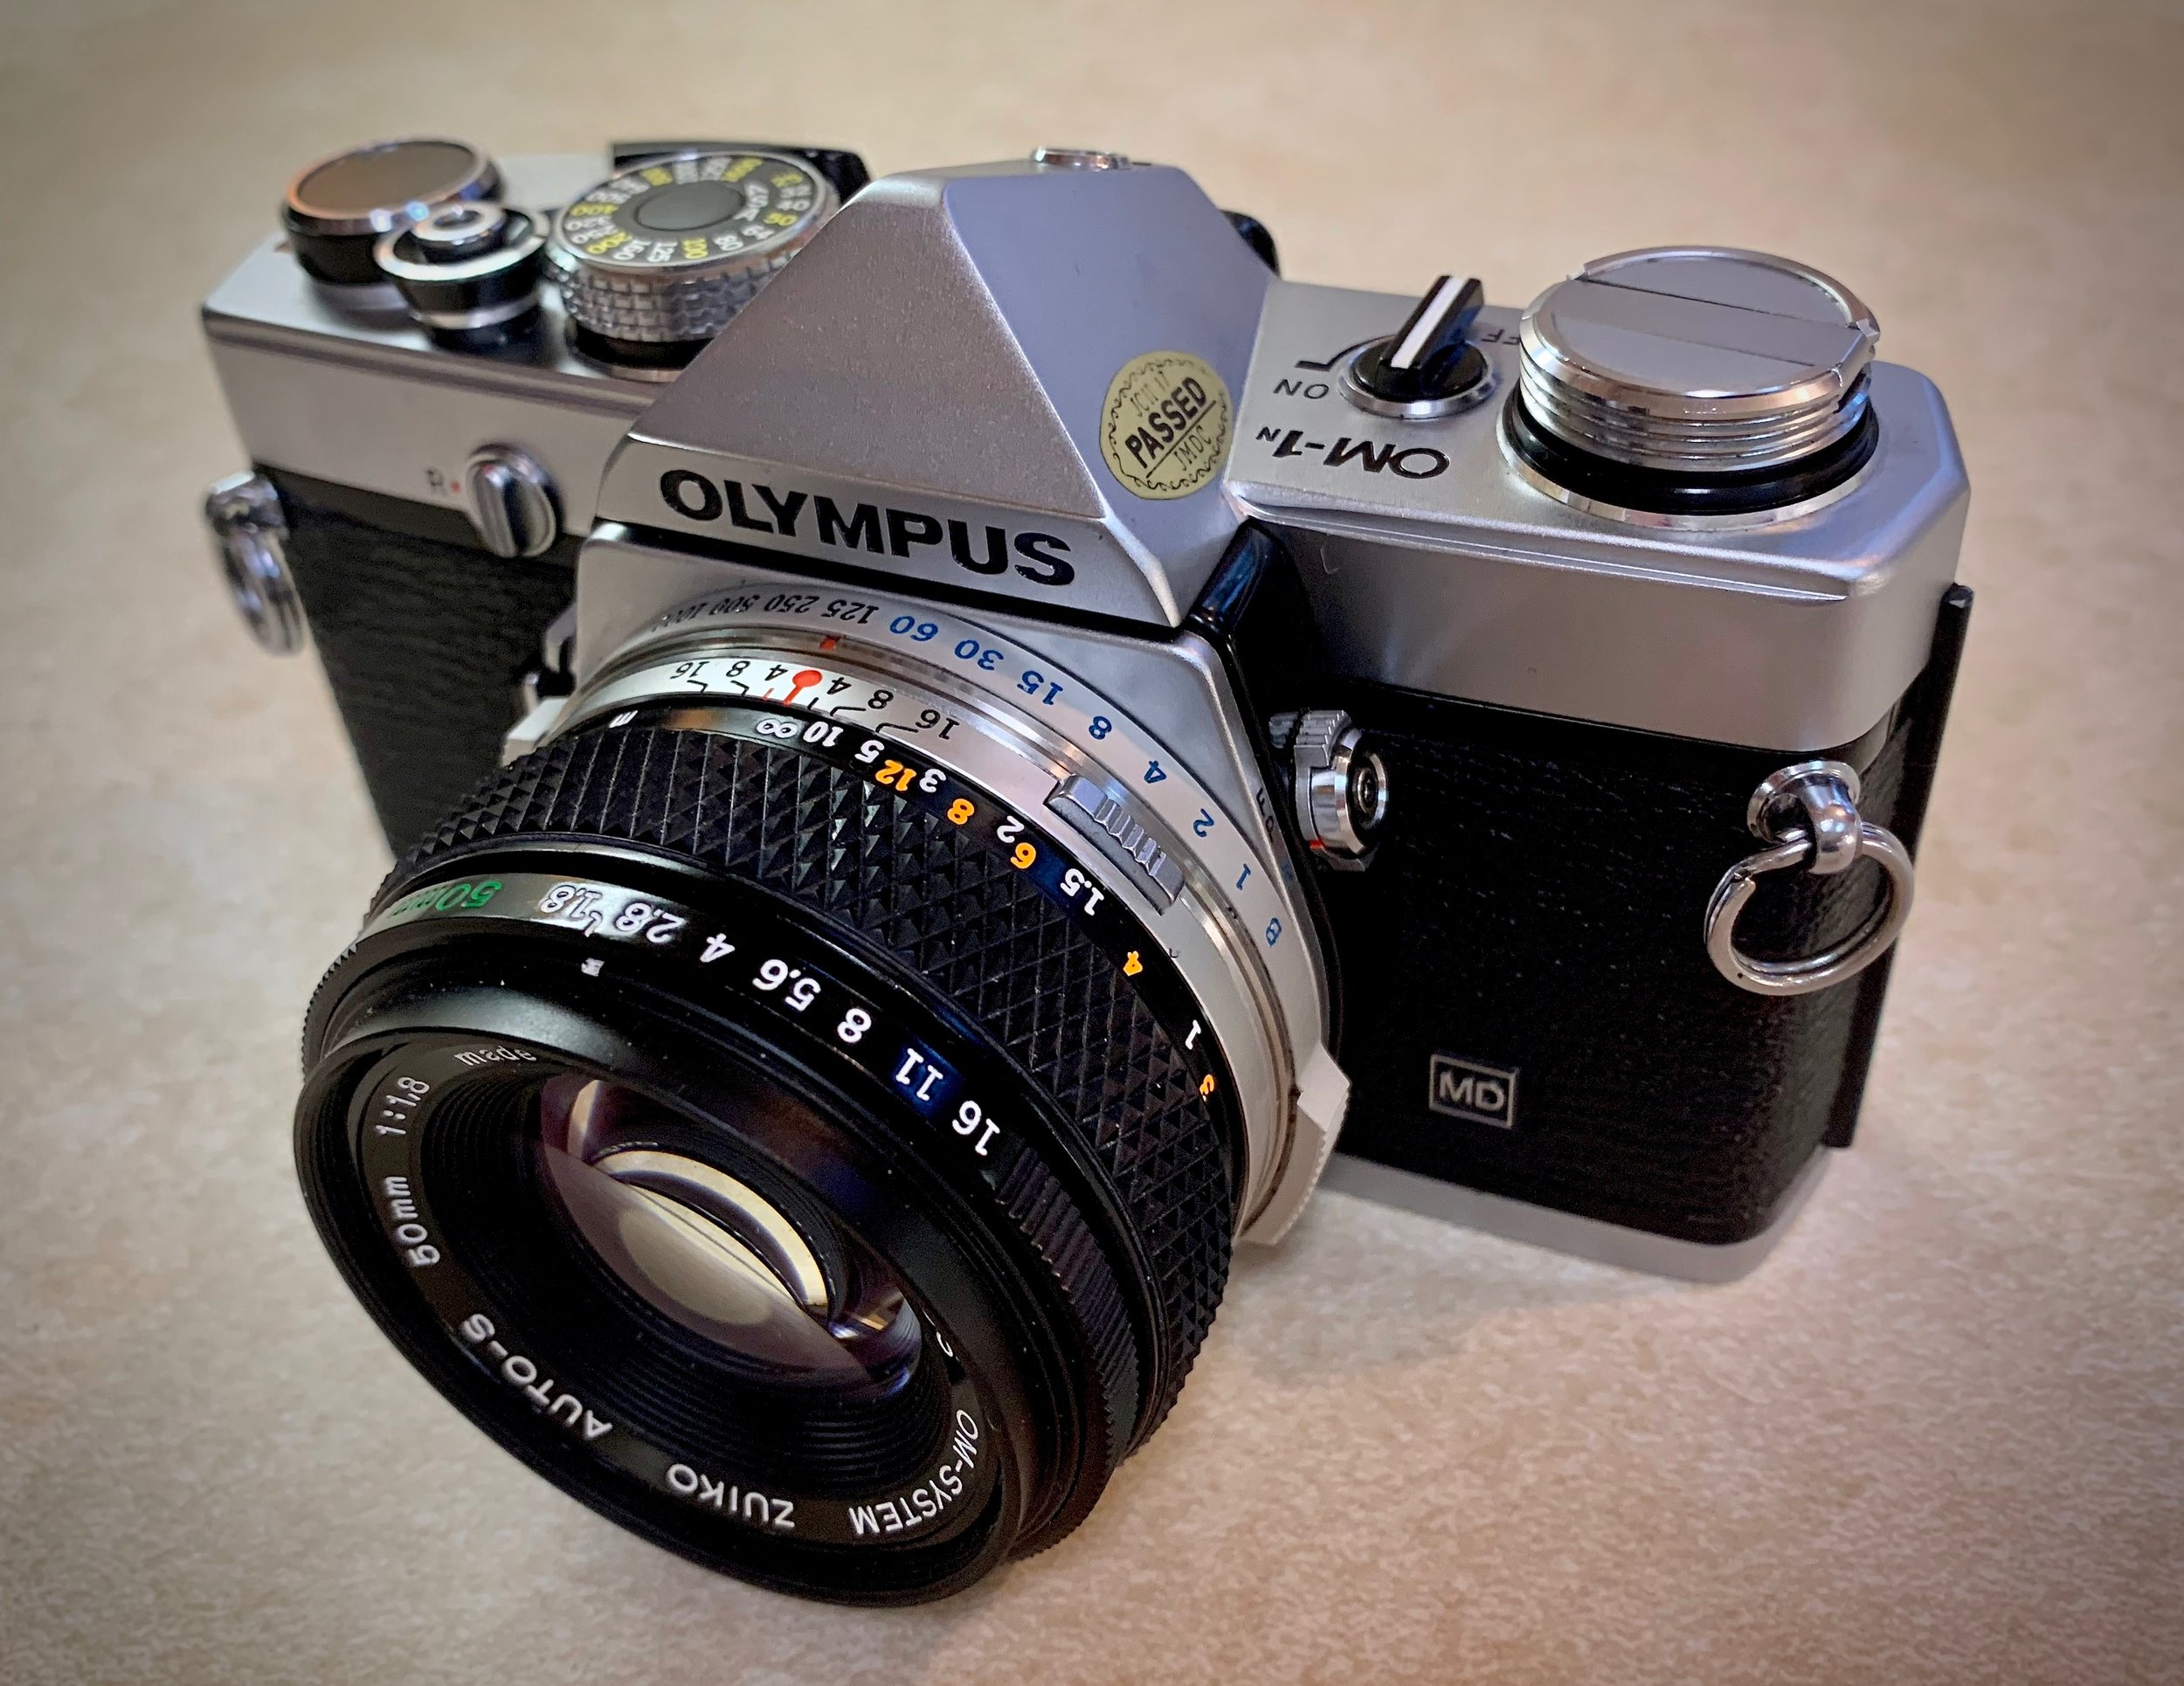 Olympus OM-1n fitted with the 50mm f/1.8 Zuiko kit lens